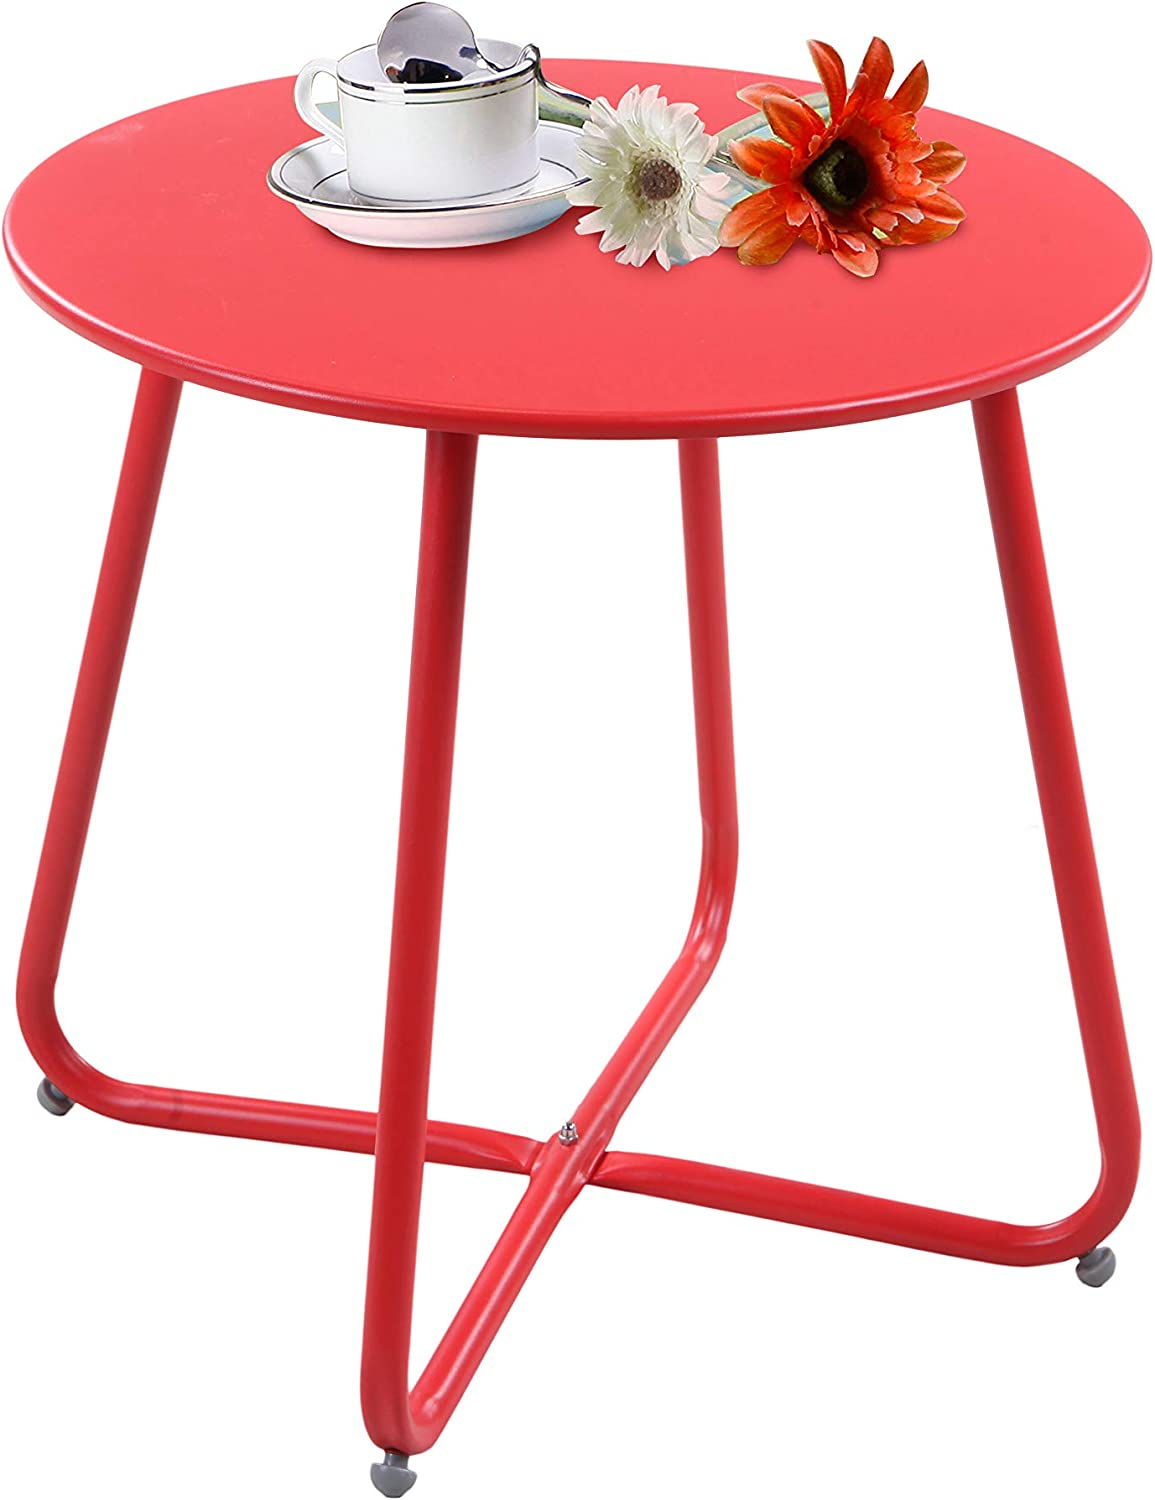 Grand Patio Steel Patio Side Table, Weather Resistant Outdoor Round End Table, Red : Garden & Outdoor